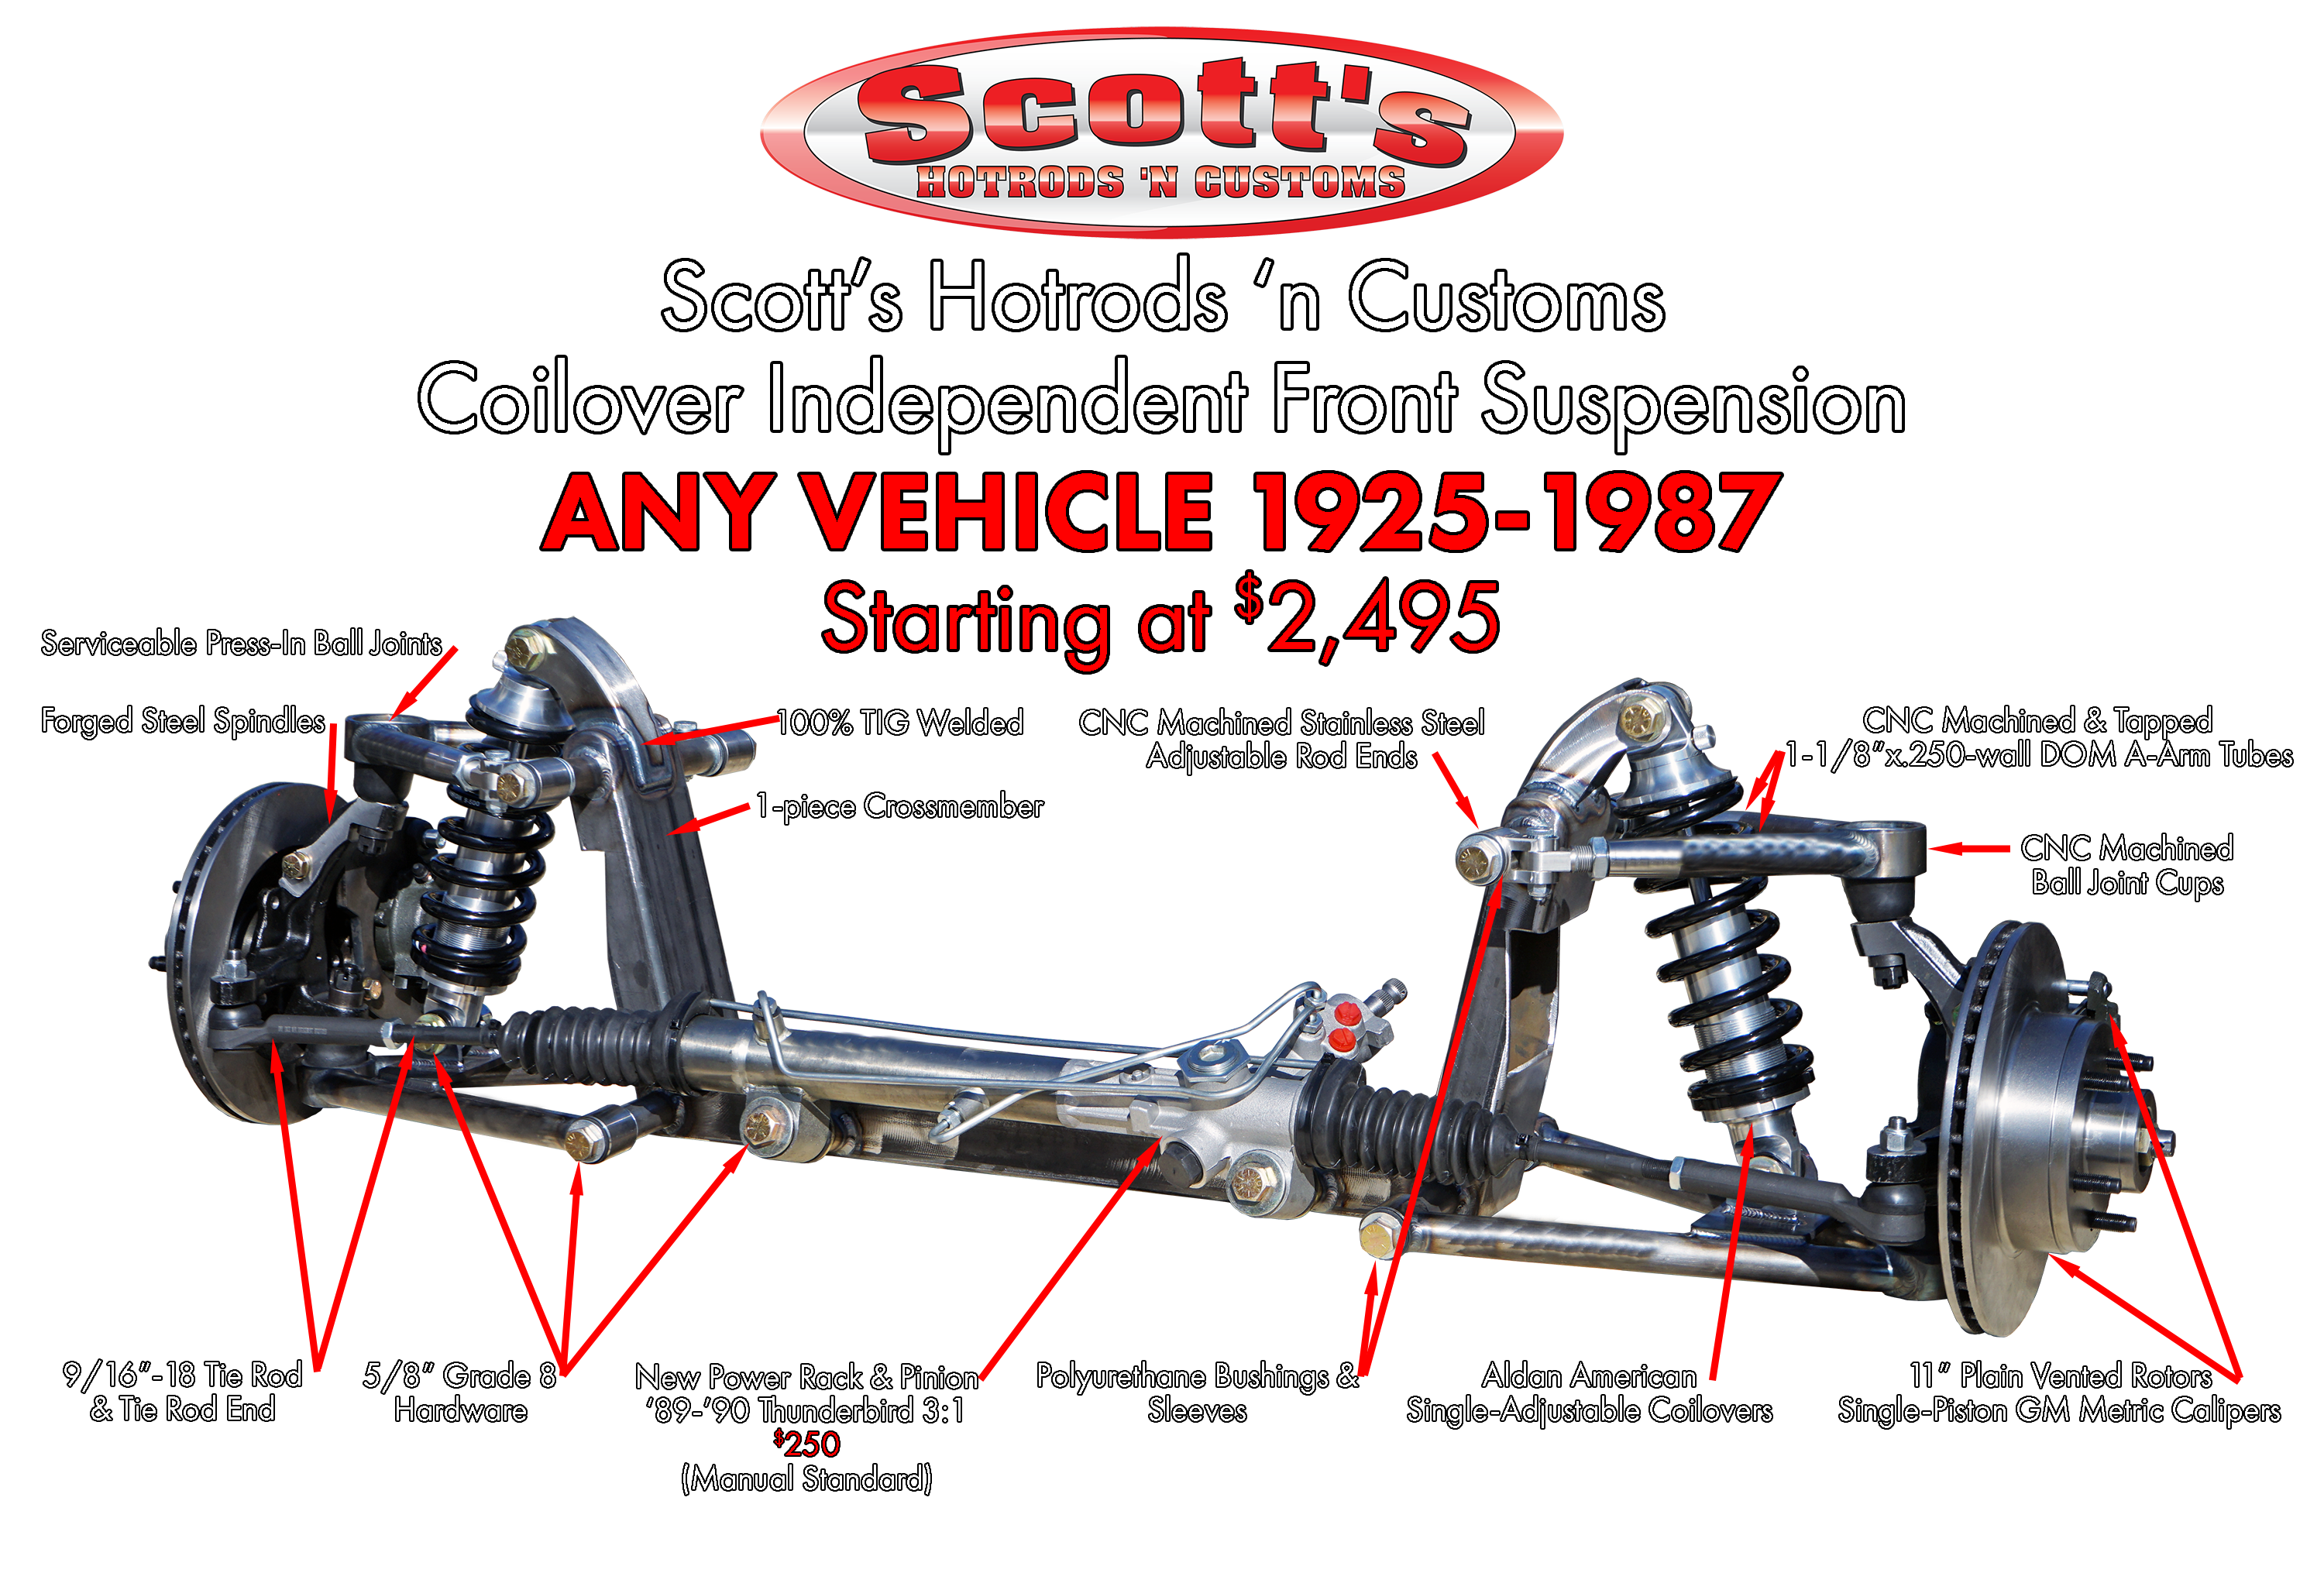 Scott's Hotrods Coilover Independent Front Suspension Kit